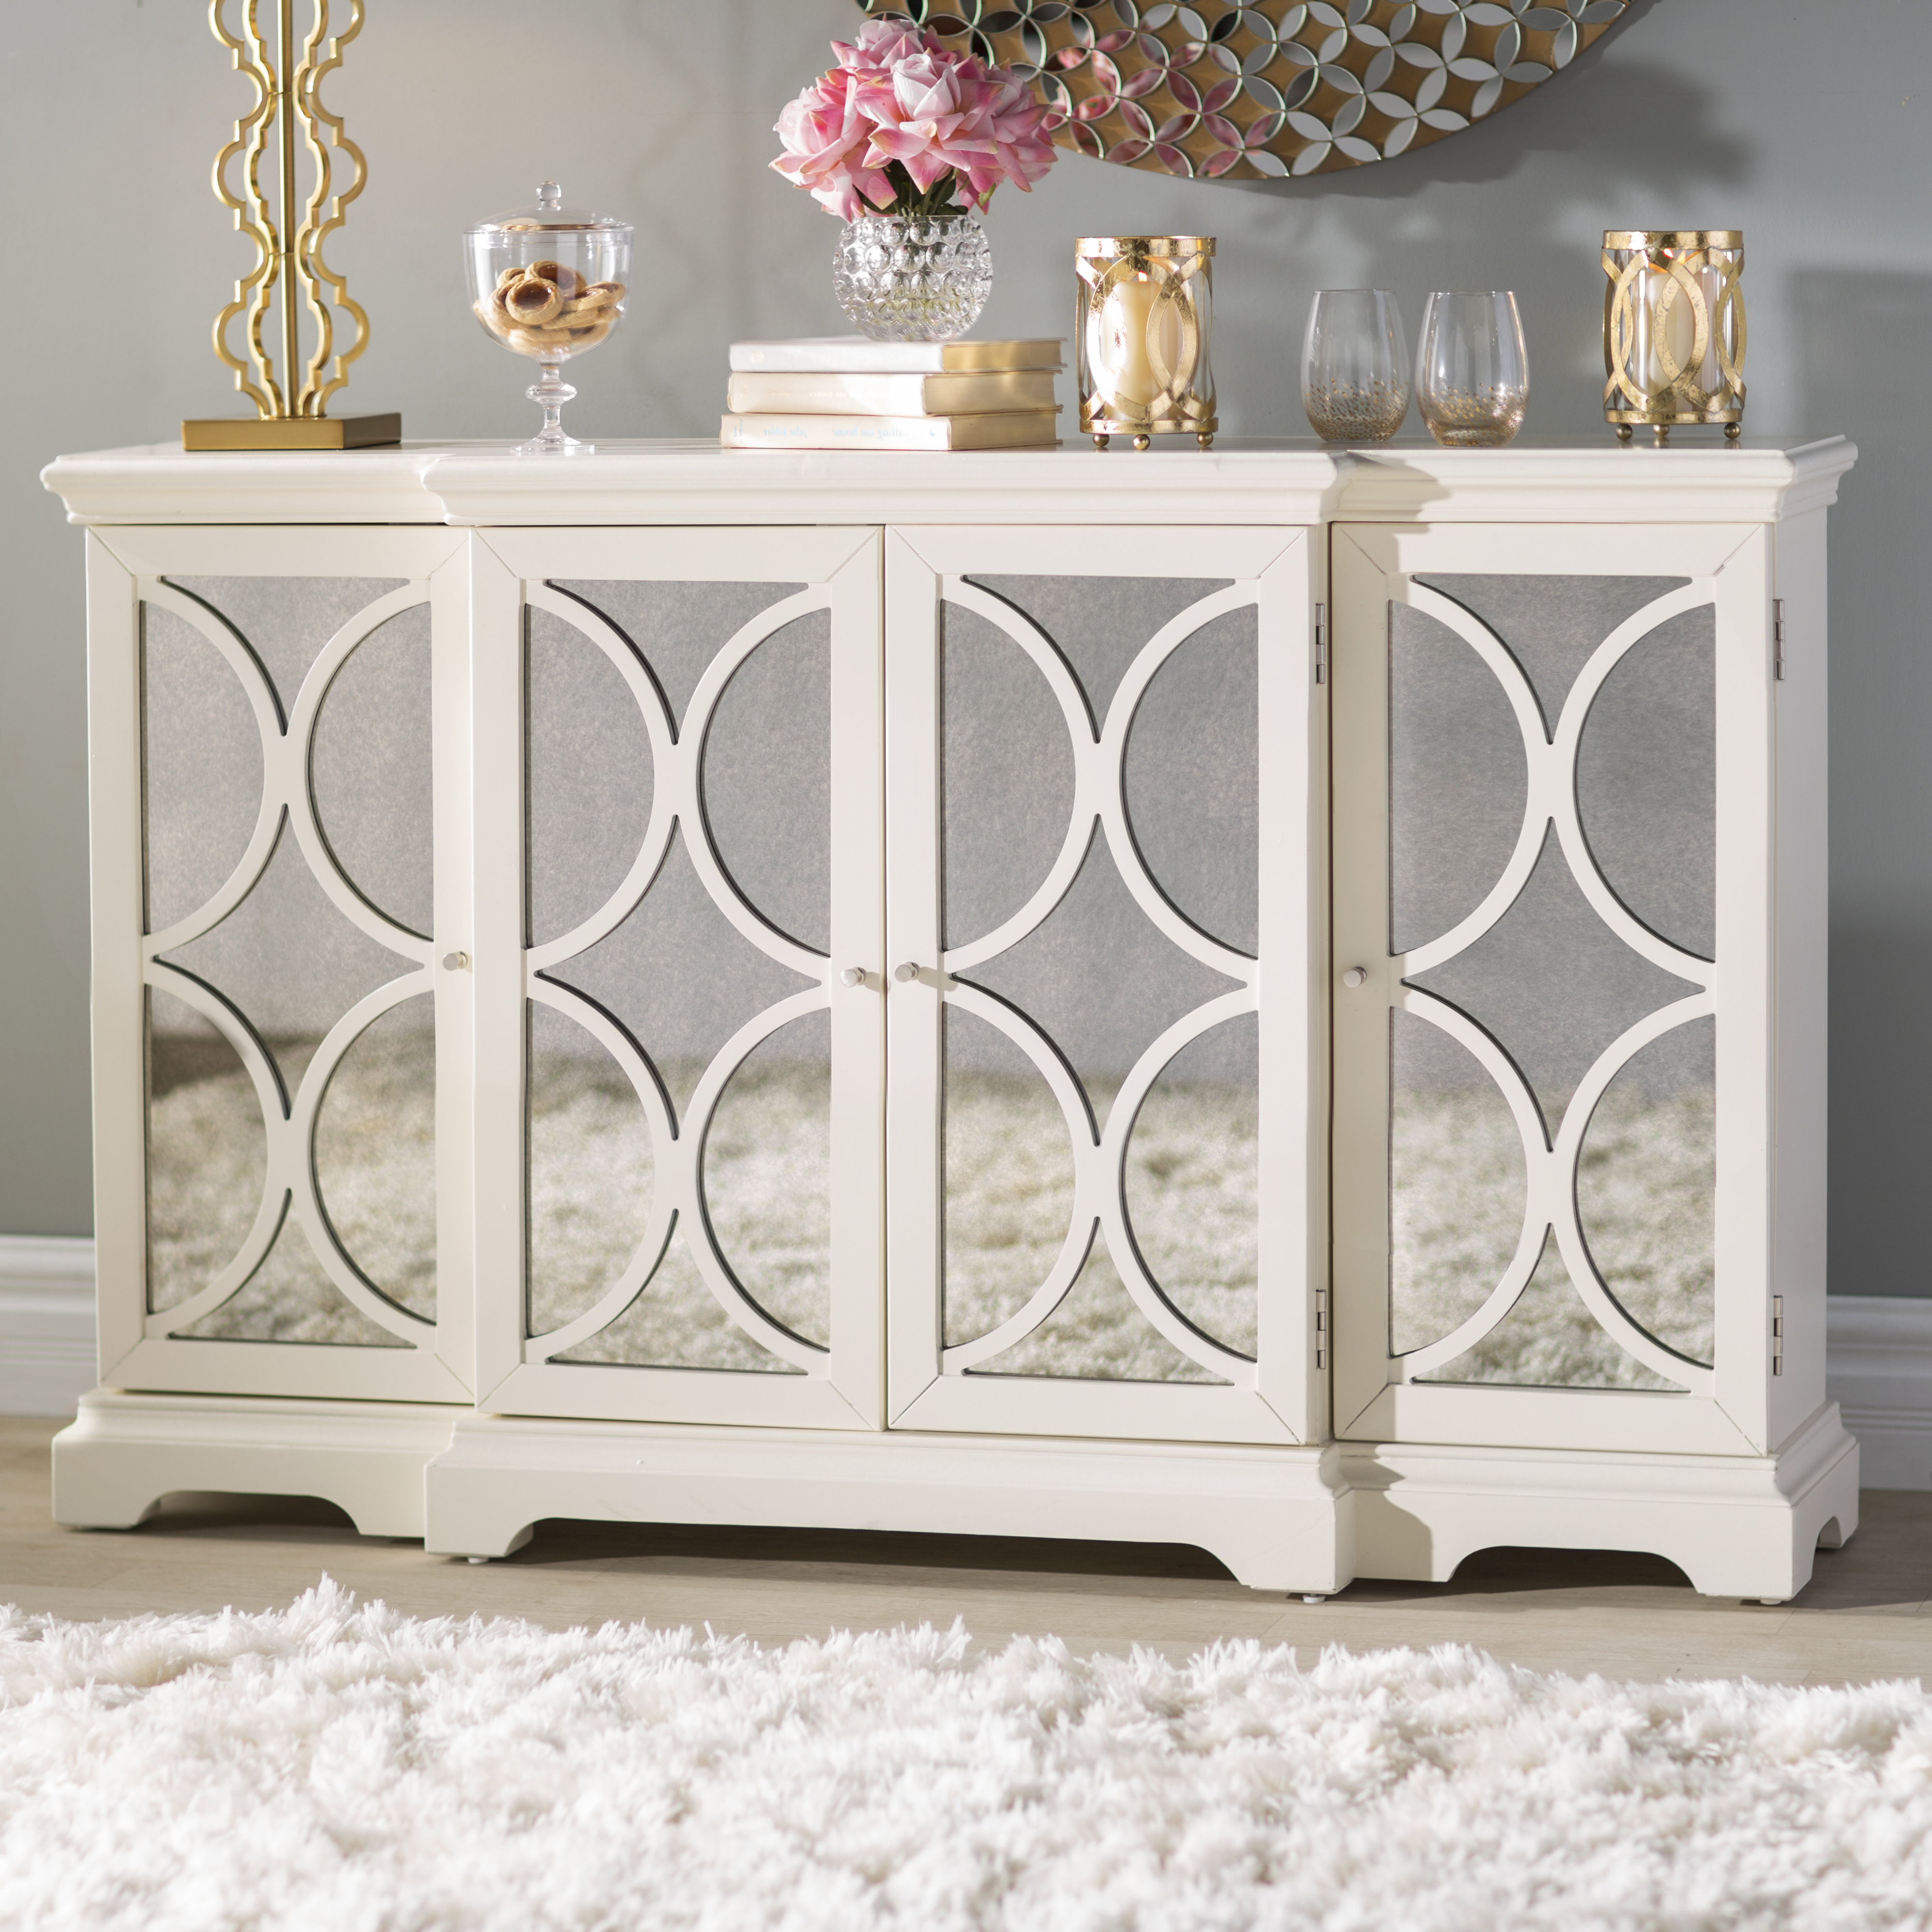 Elyza Credenza Pertaining To Tott And Eling Sideboards (View 16 of 20)